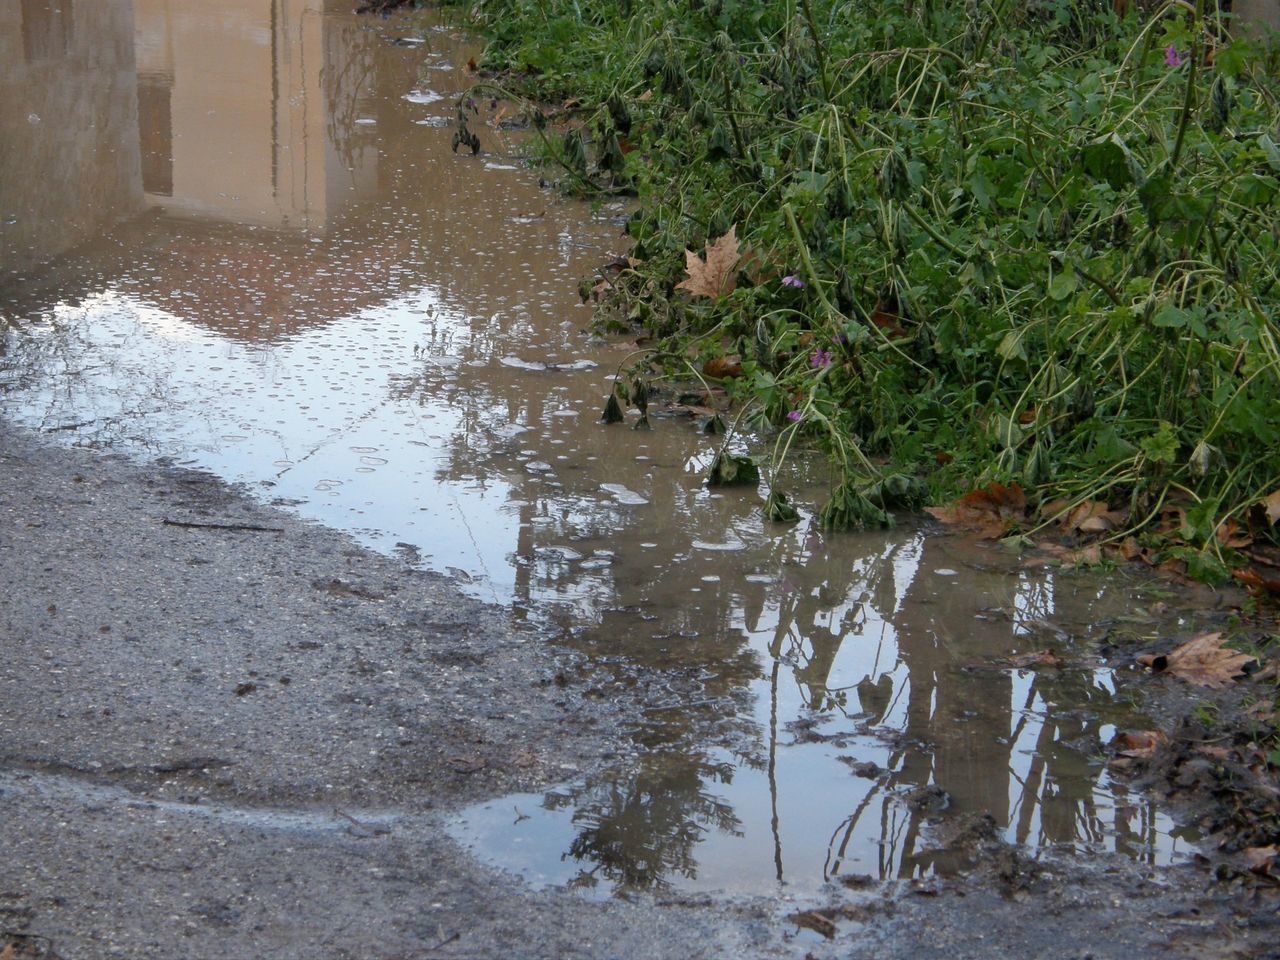 water, reflection, nature, puddle, outdoors, no people, plant, flood, day